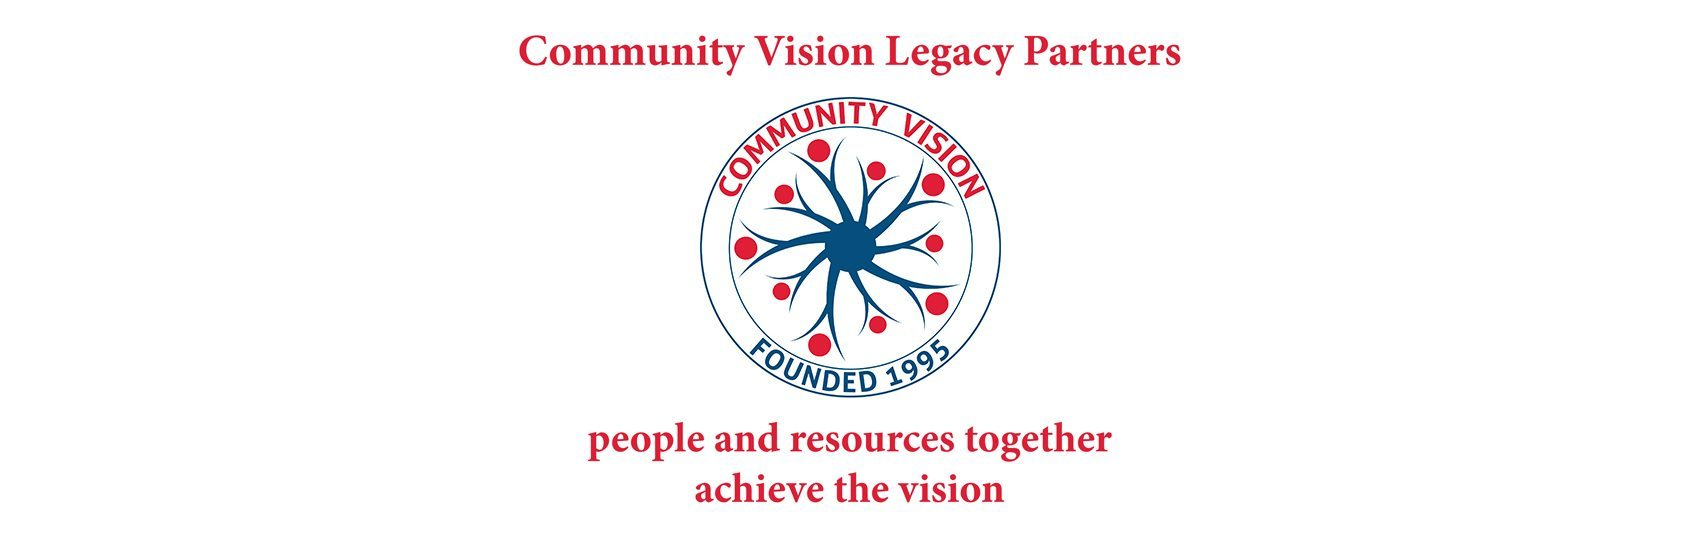 community-vision-legacy-partners-2016